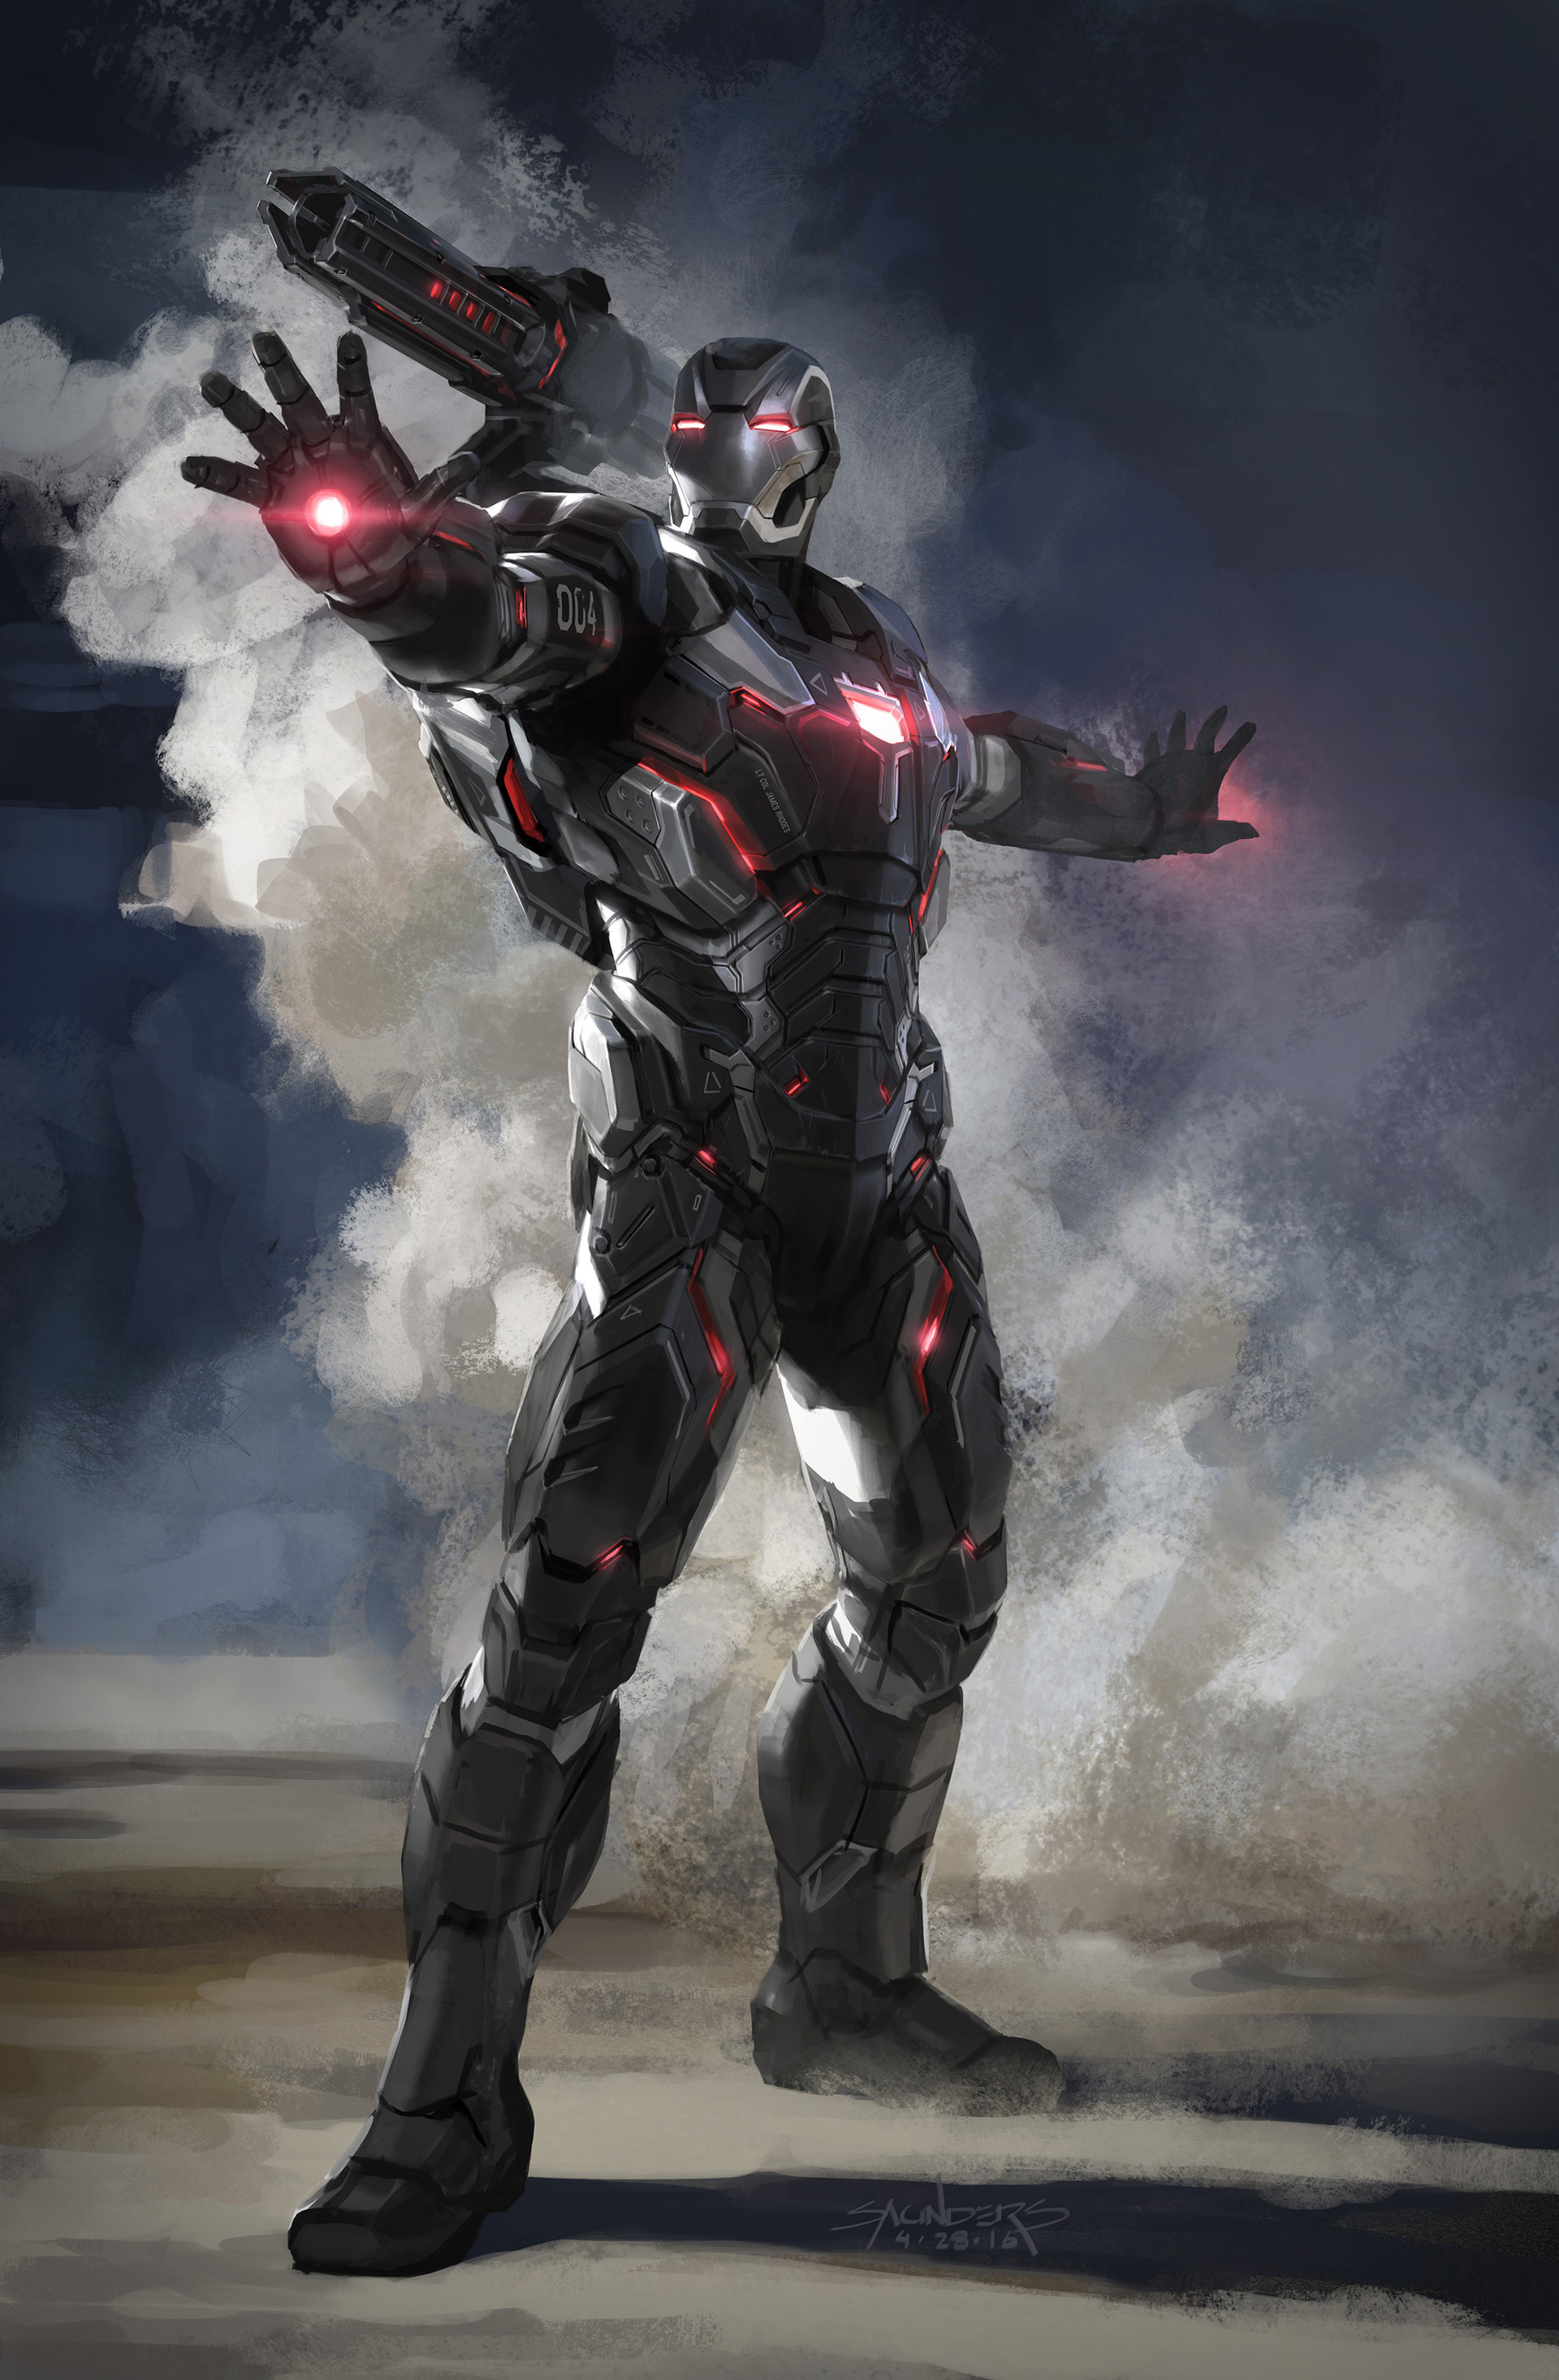 War Machine Armor Mark IV